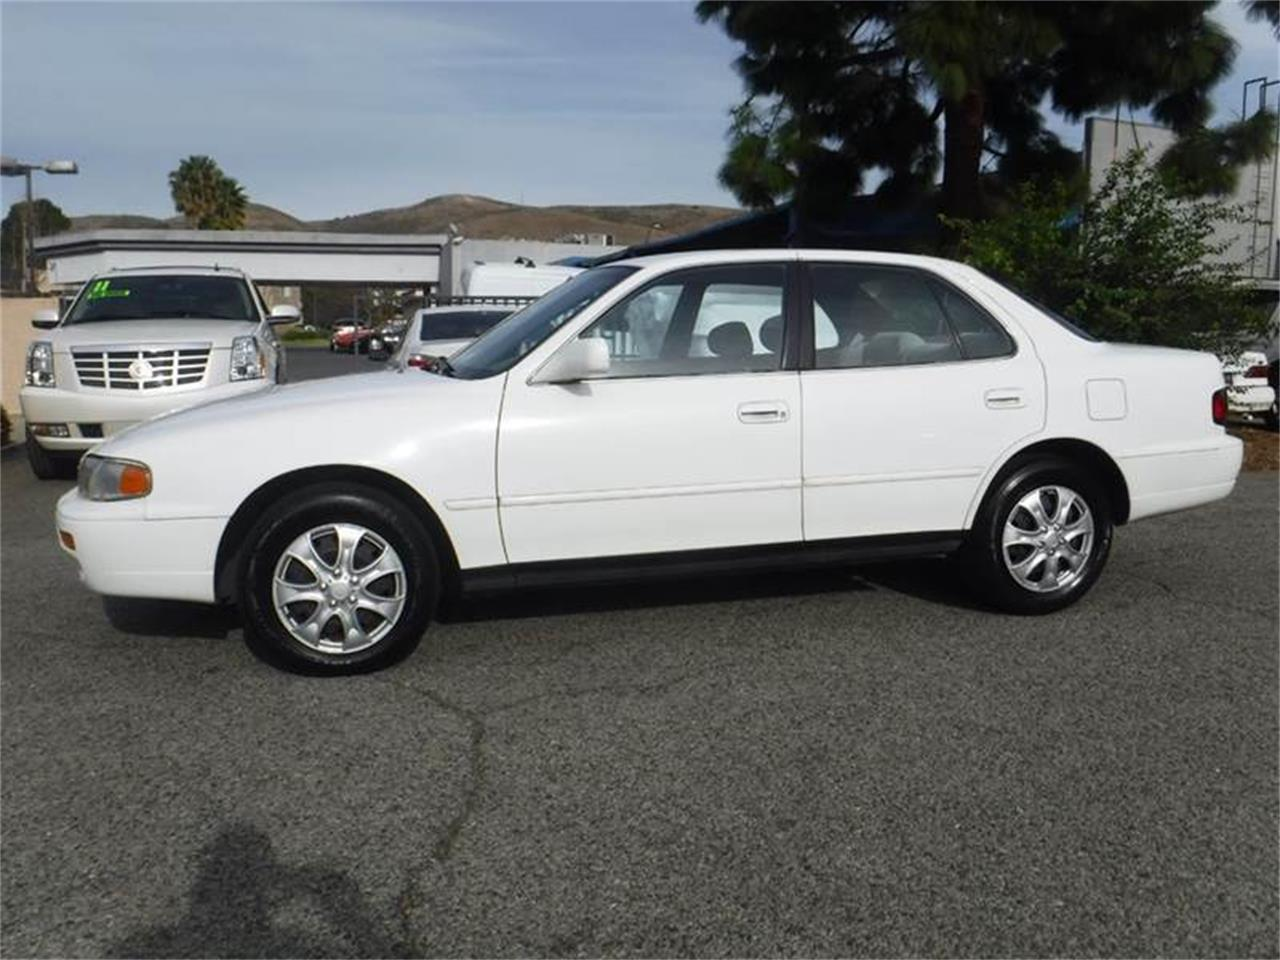 1996 toyota camry for sale classiccars com cc 1062264 1996 toyota camry for sale